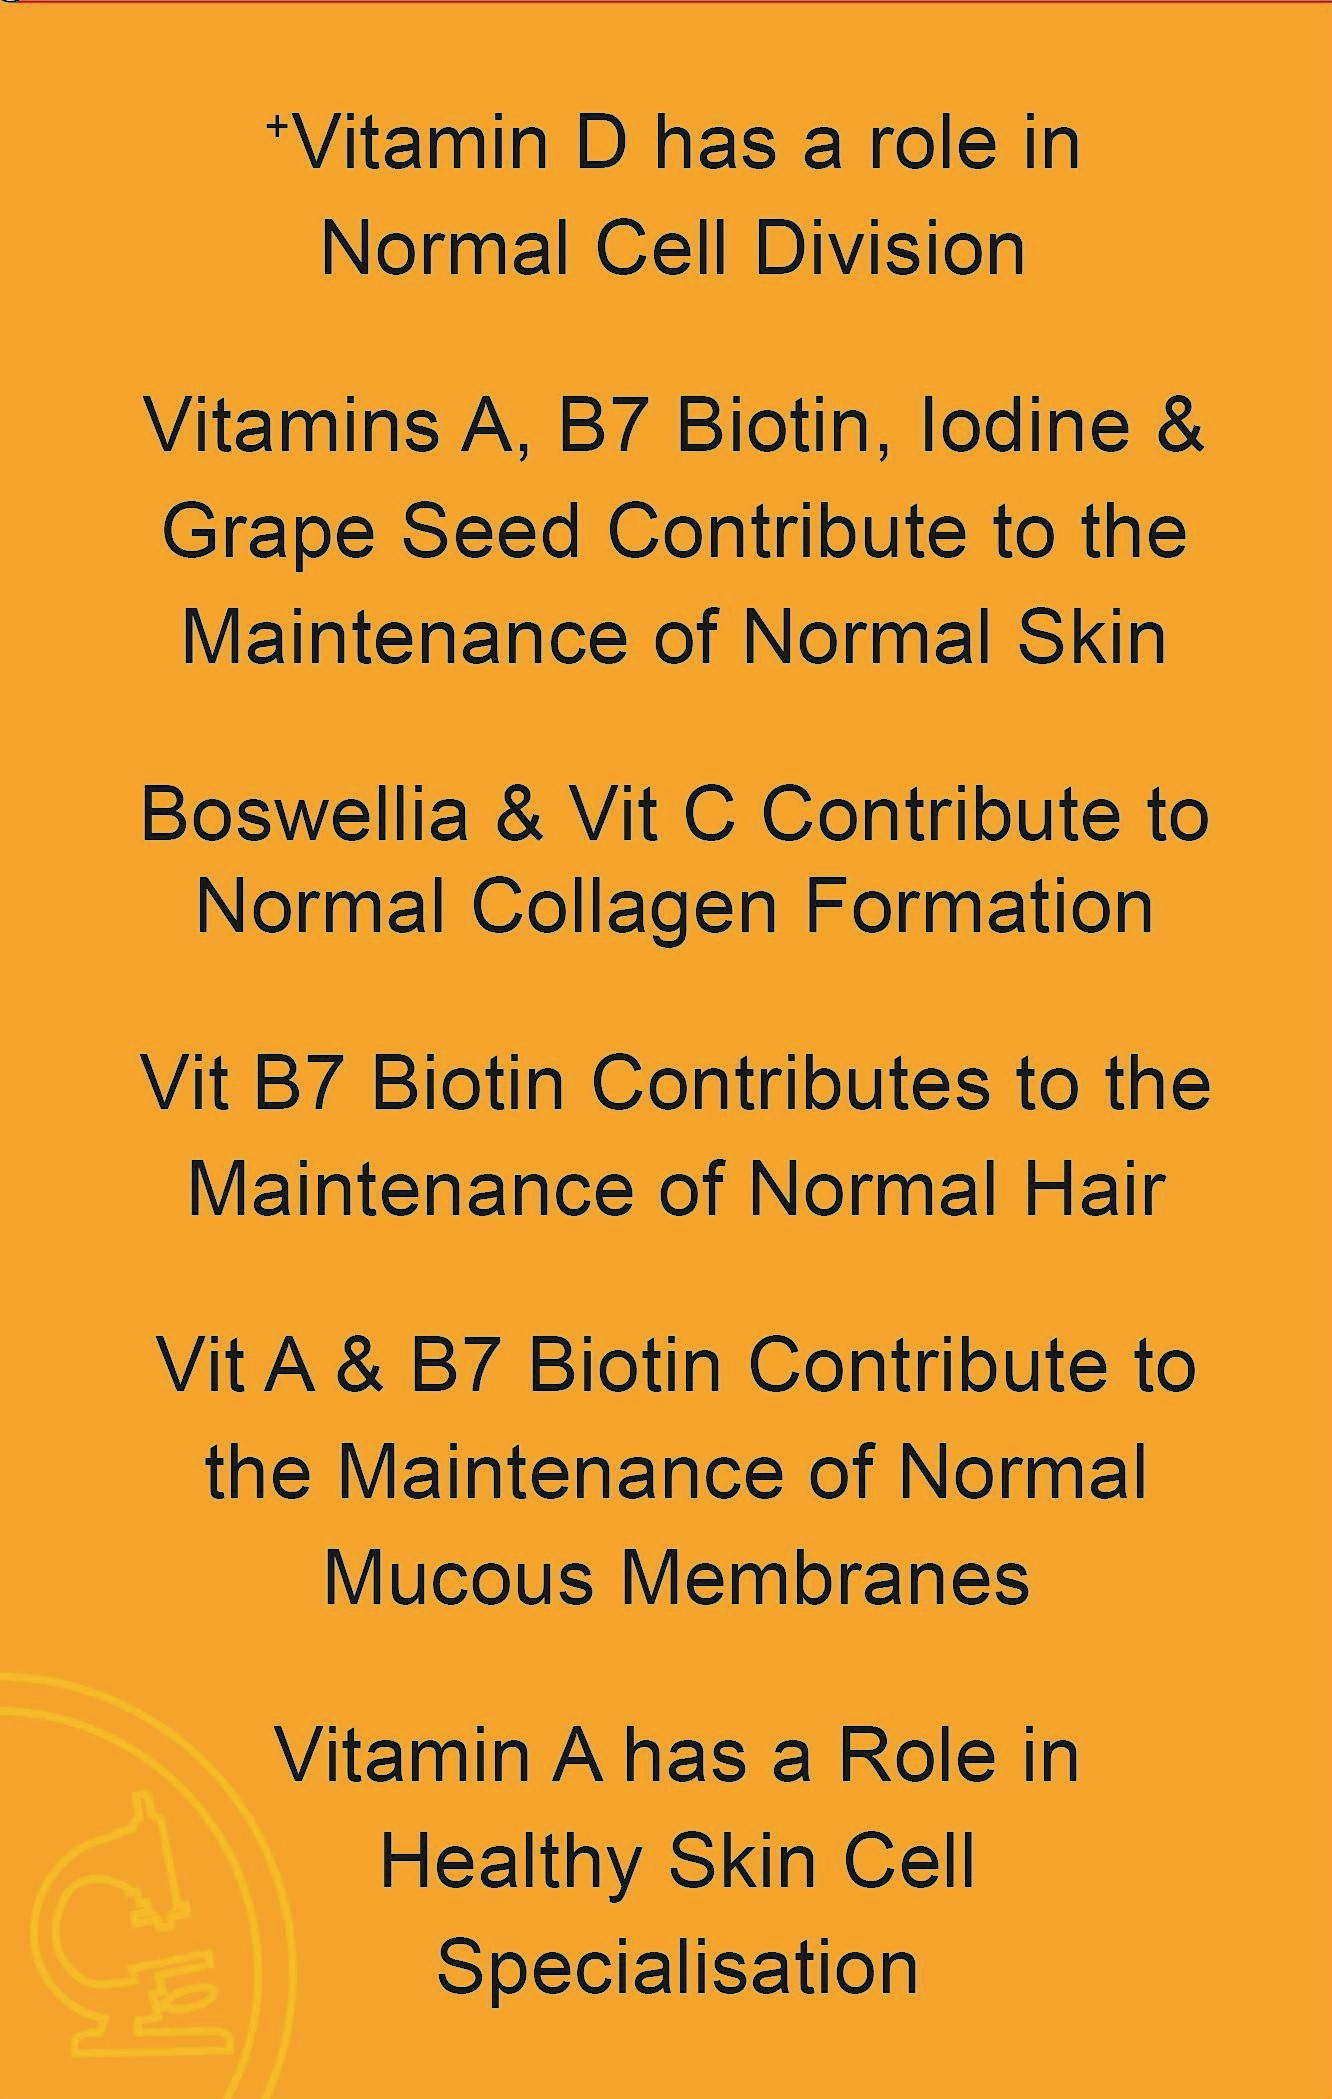 Healthy Cell 6 - Benefits